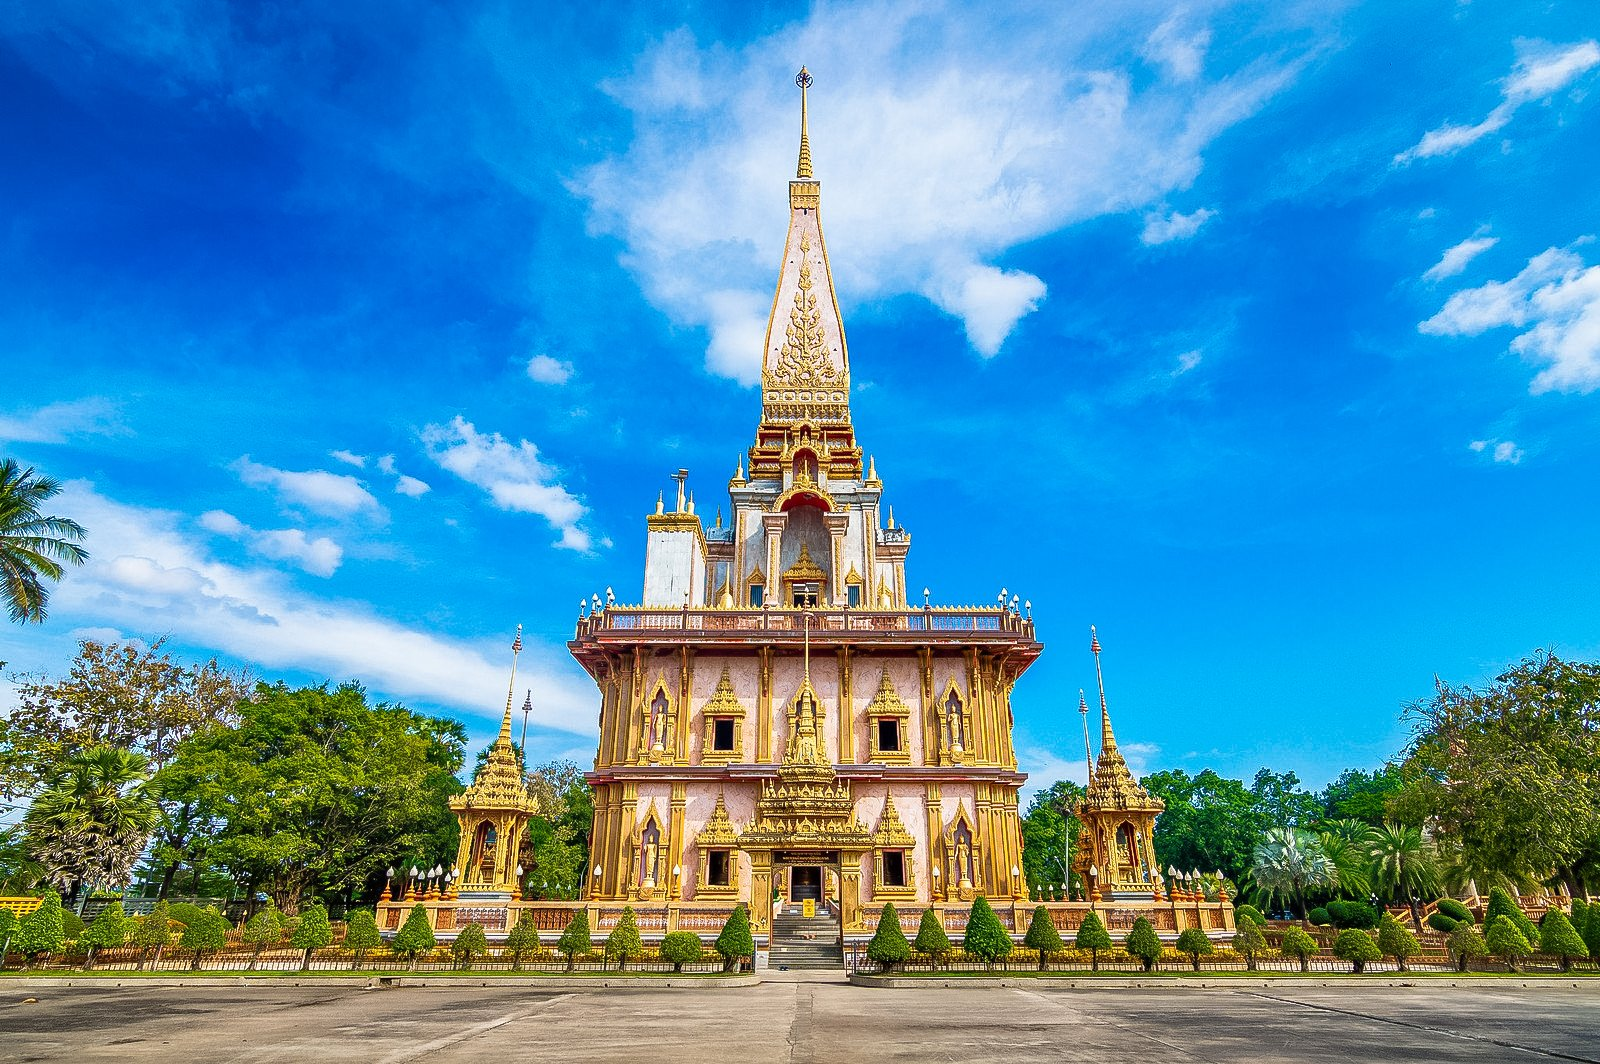 Wat Chalong is Buddhist Temples that is an important and sacred place for Buddhists in Phuket, Thailand.